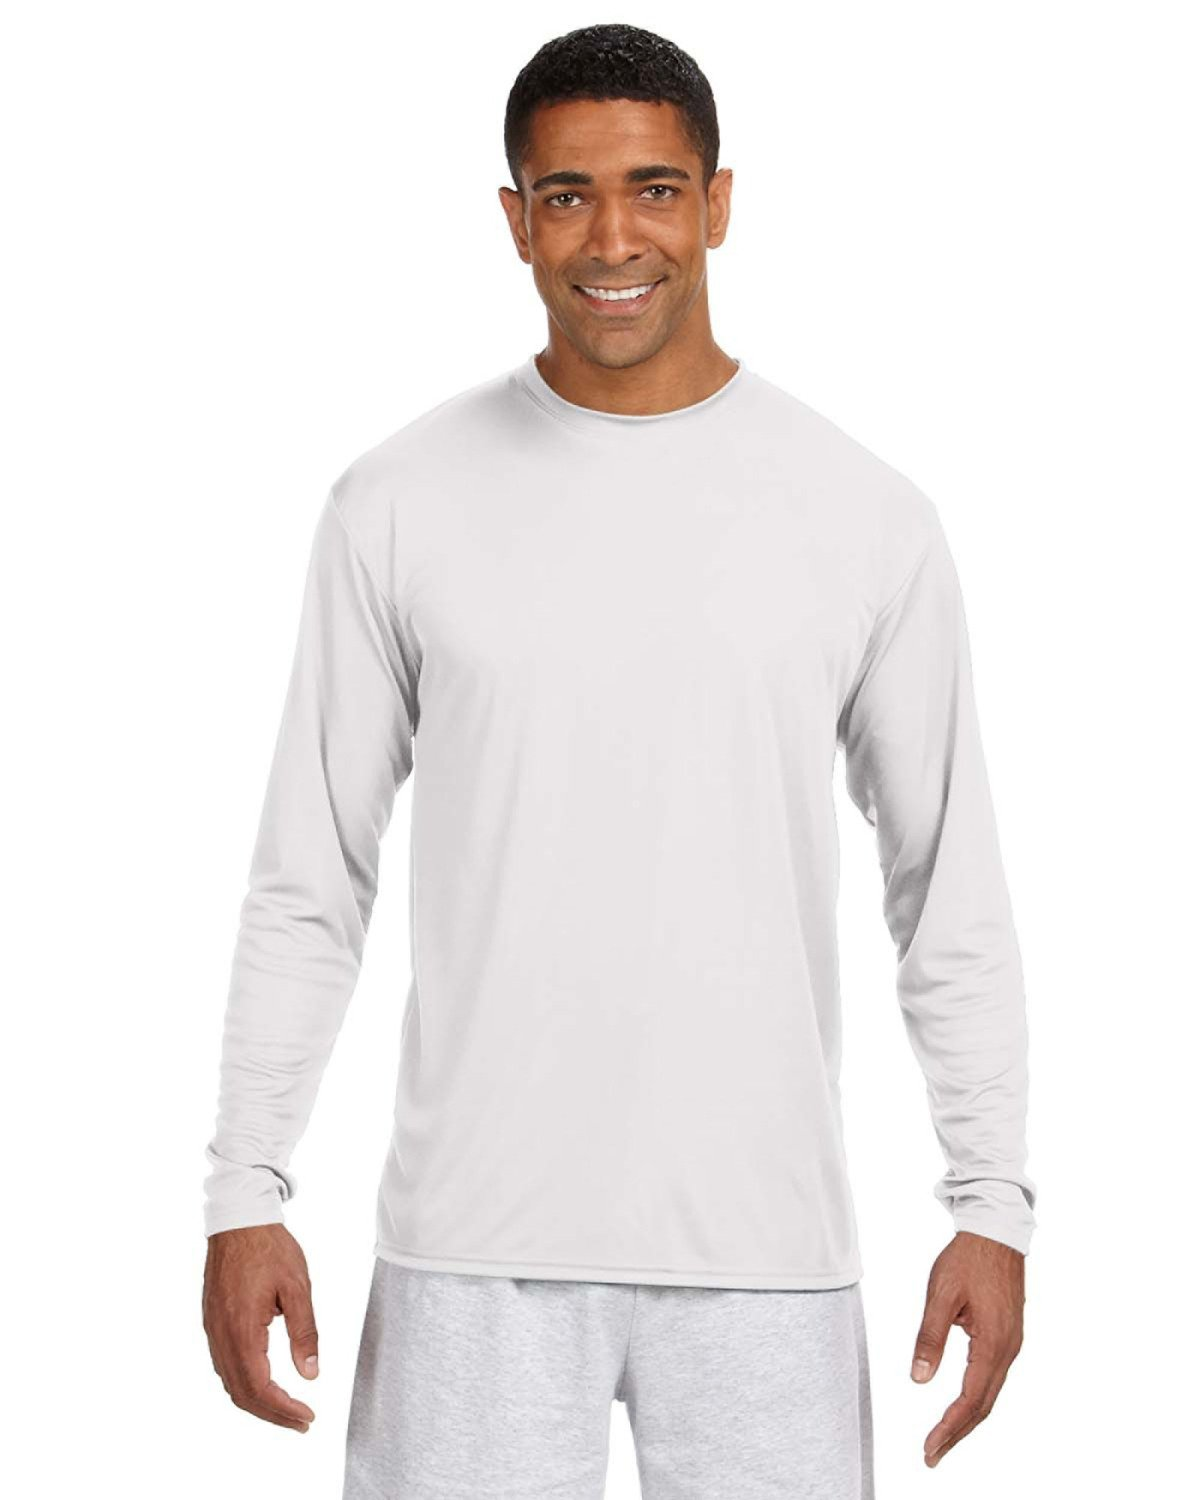 A4 Men's Cooling Performance Long Sleeve T-Shirt WHITE